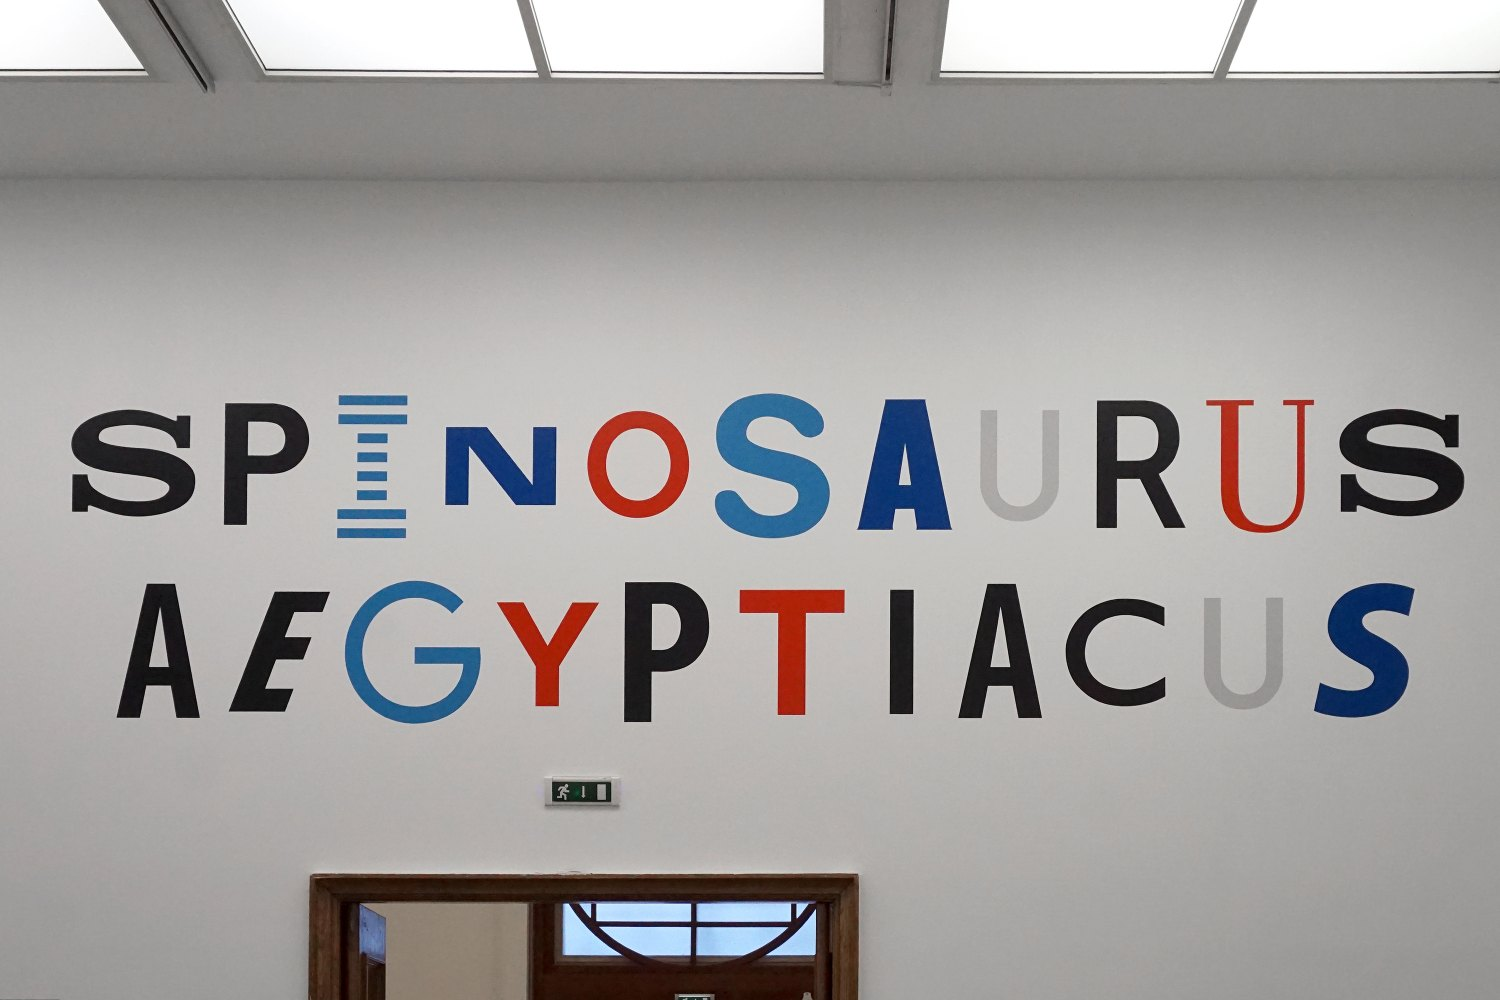 Sean Snyder Spinosaurus Aegyptiacus (Visual Identity), 2018 Painted wall (RAL 3020, RAL 5012, RAL 5017, RAL 707, RAL 9017), 135 x 500 cm